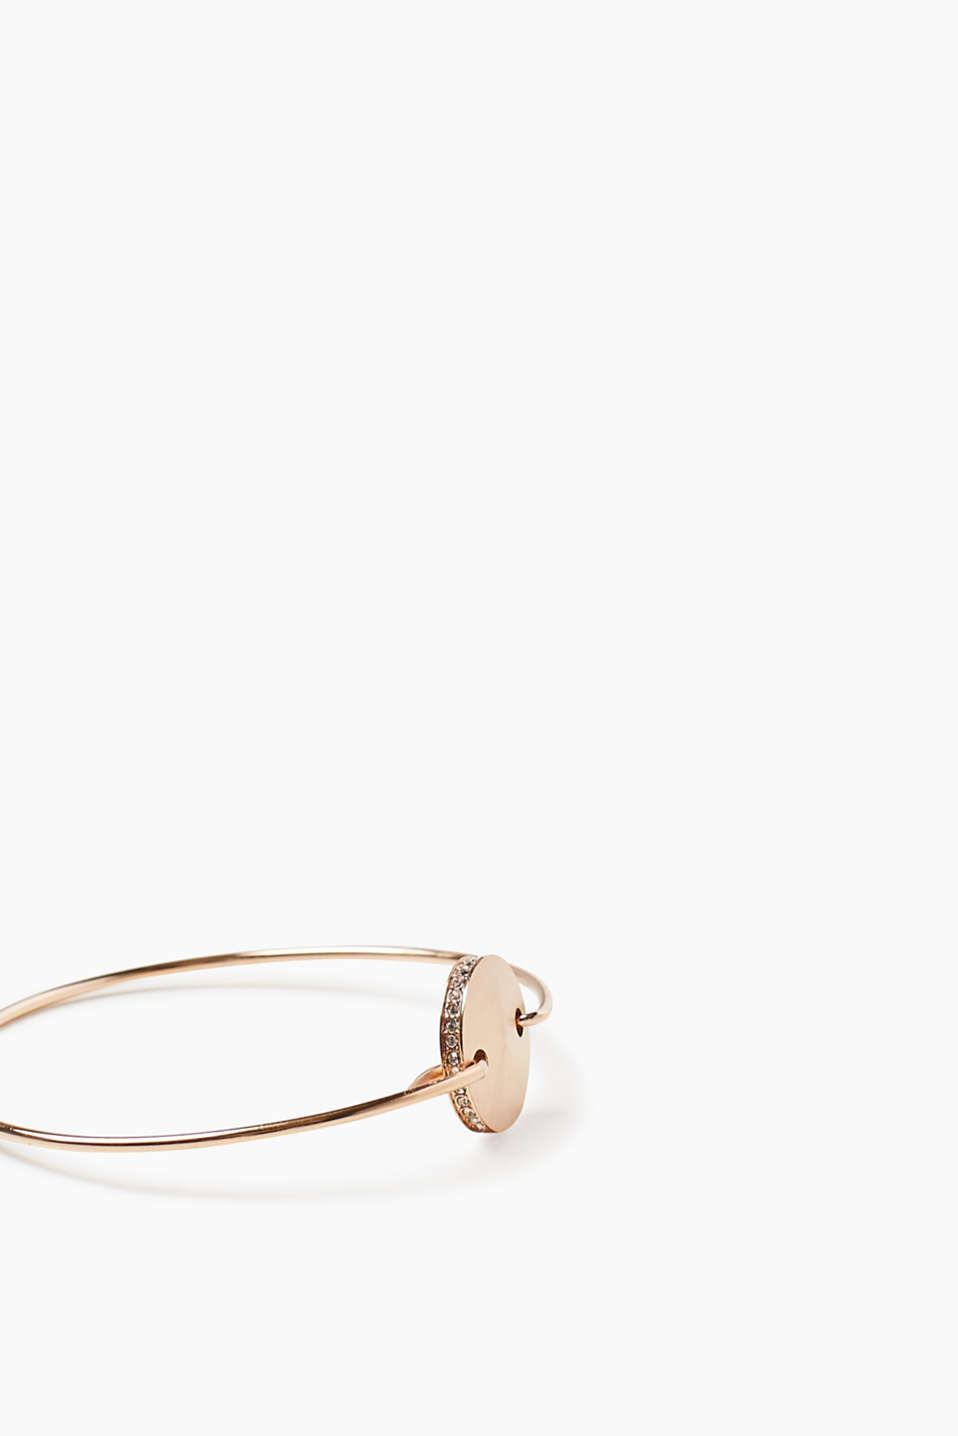 Minimalist bangle in rose gold